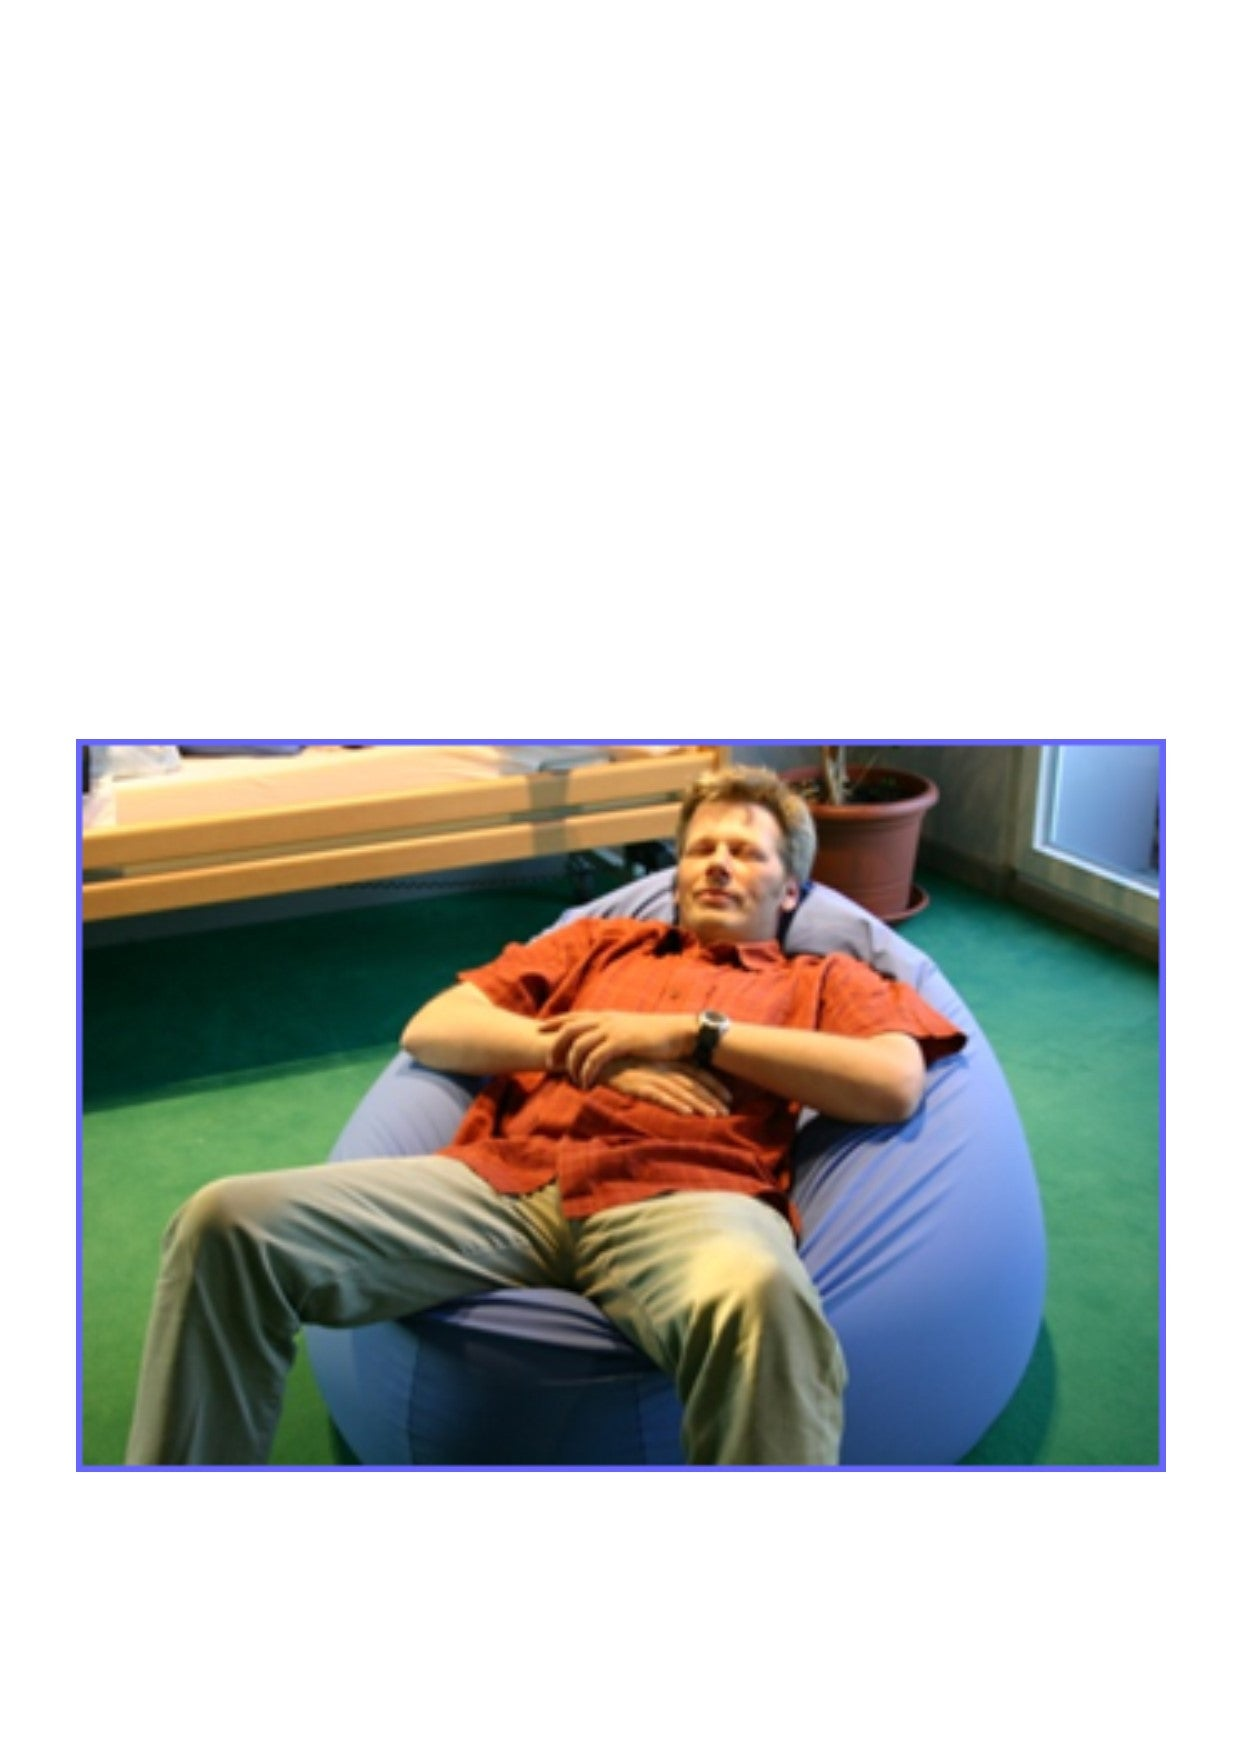 Bean Bag for Posture Support